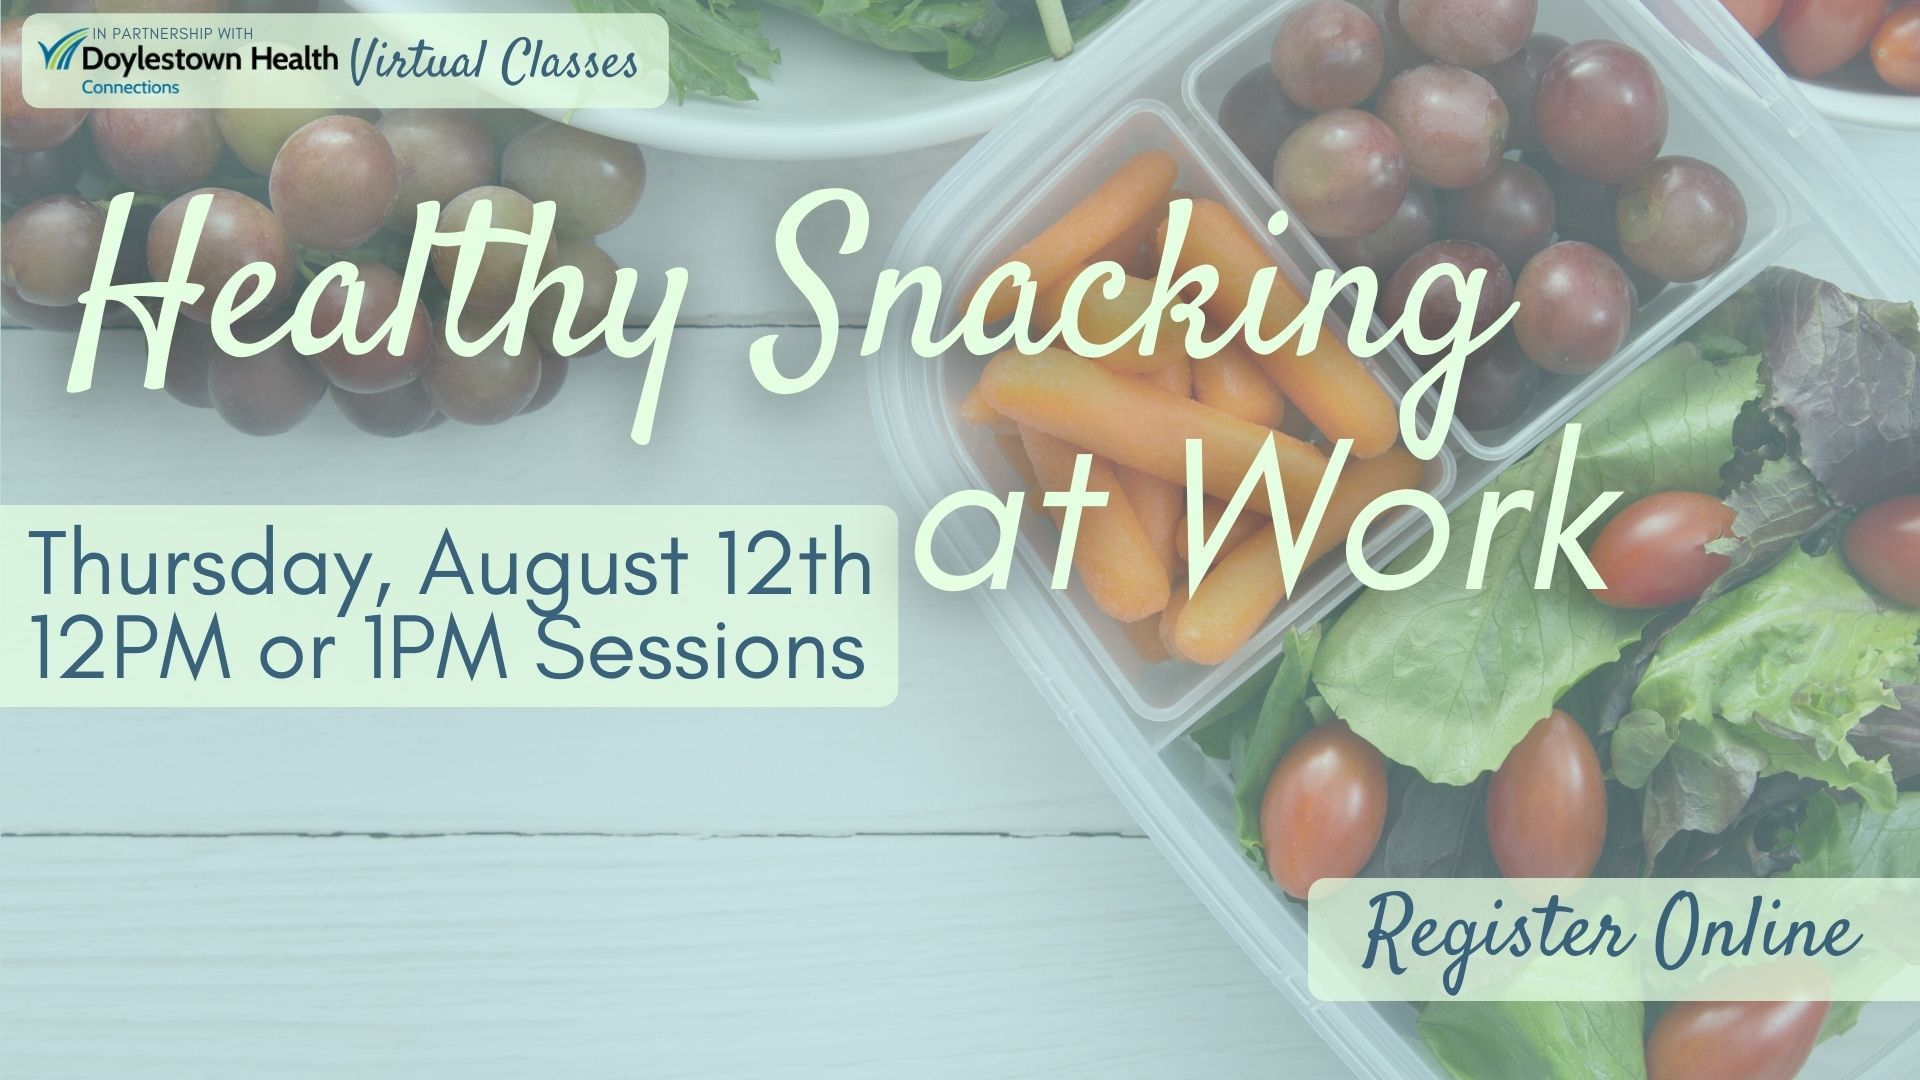 Healthy Snacking at Work (2 Sessions)